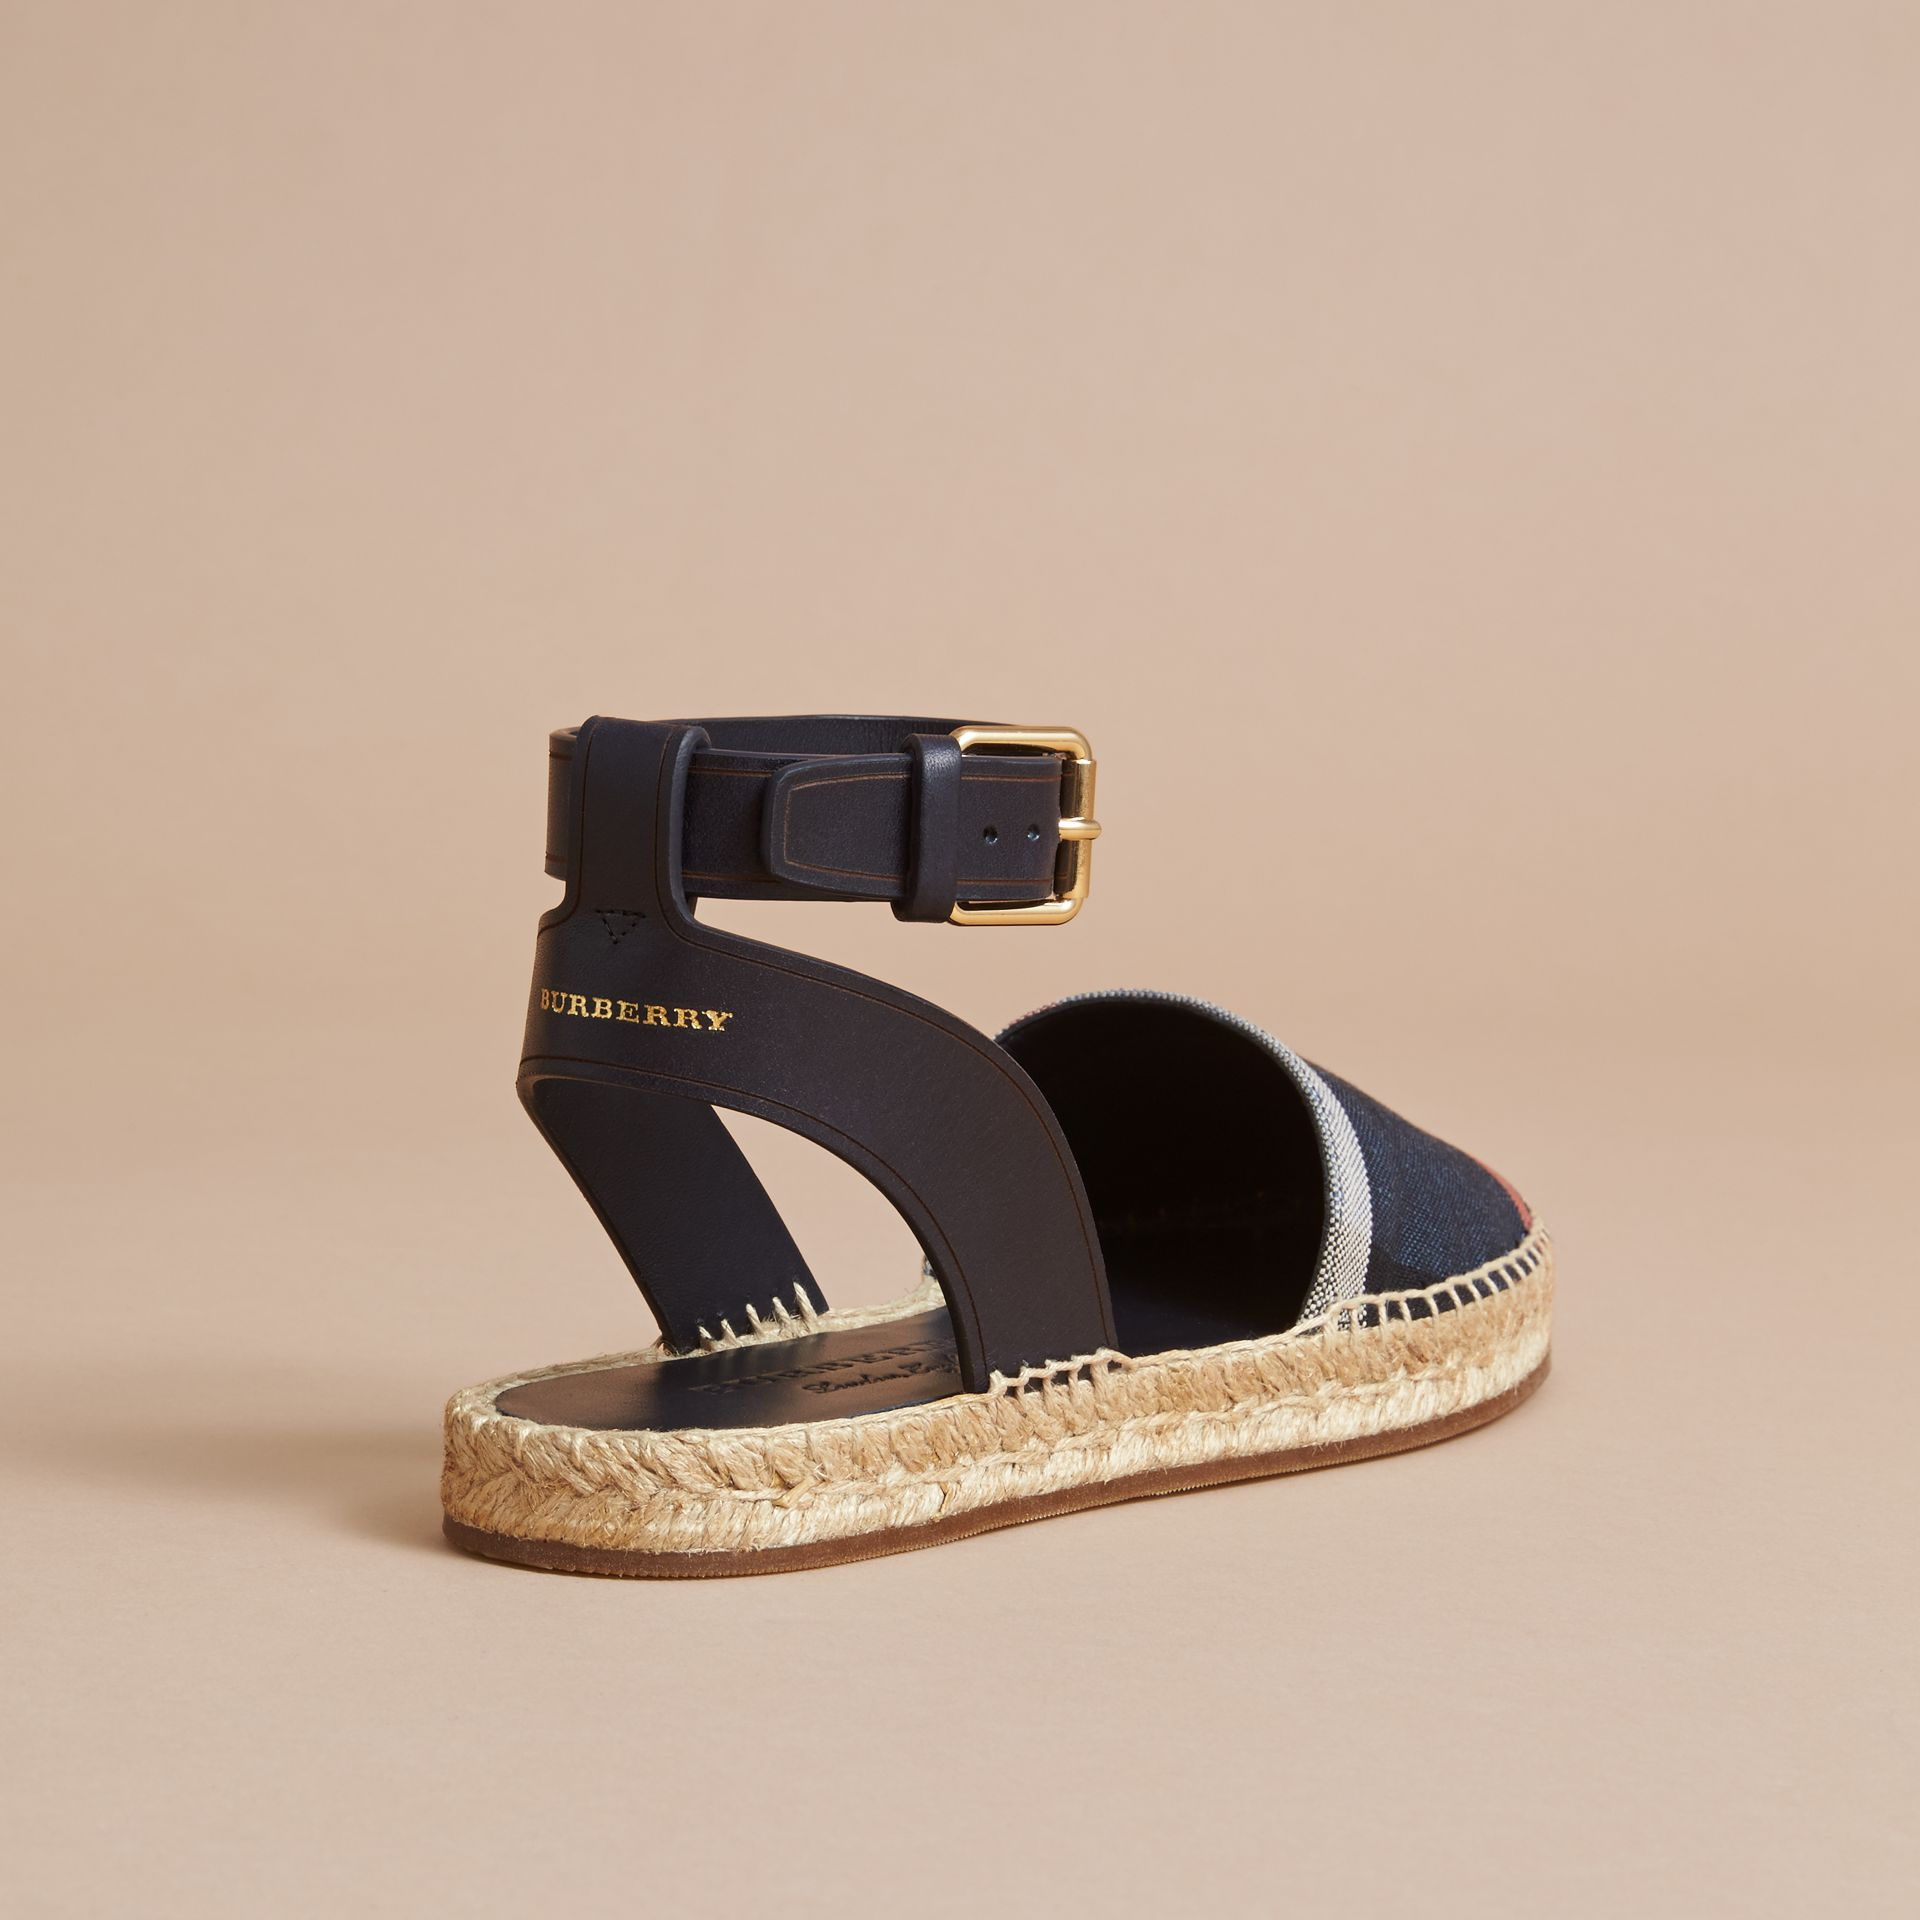 Leather and Check Linen Cotton Espadrille Sandals in Navy - Women | Burberry United Kingdom - gallery image 3